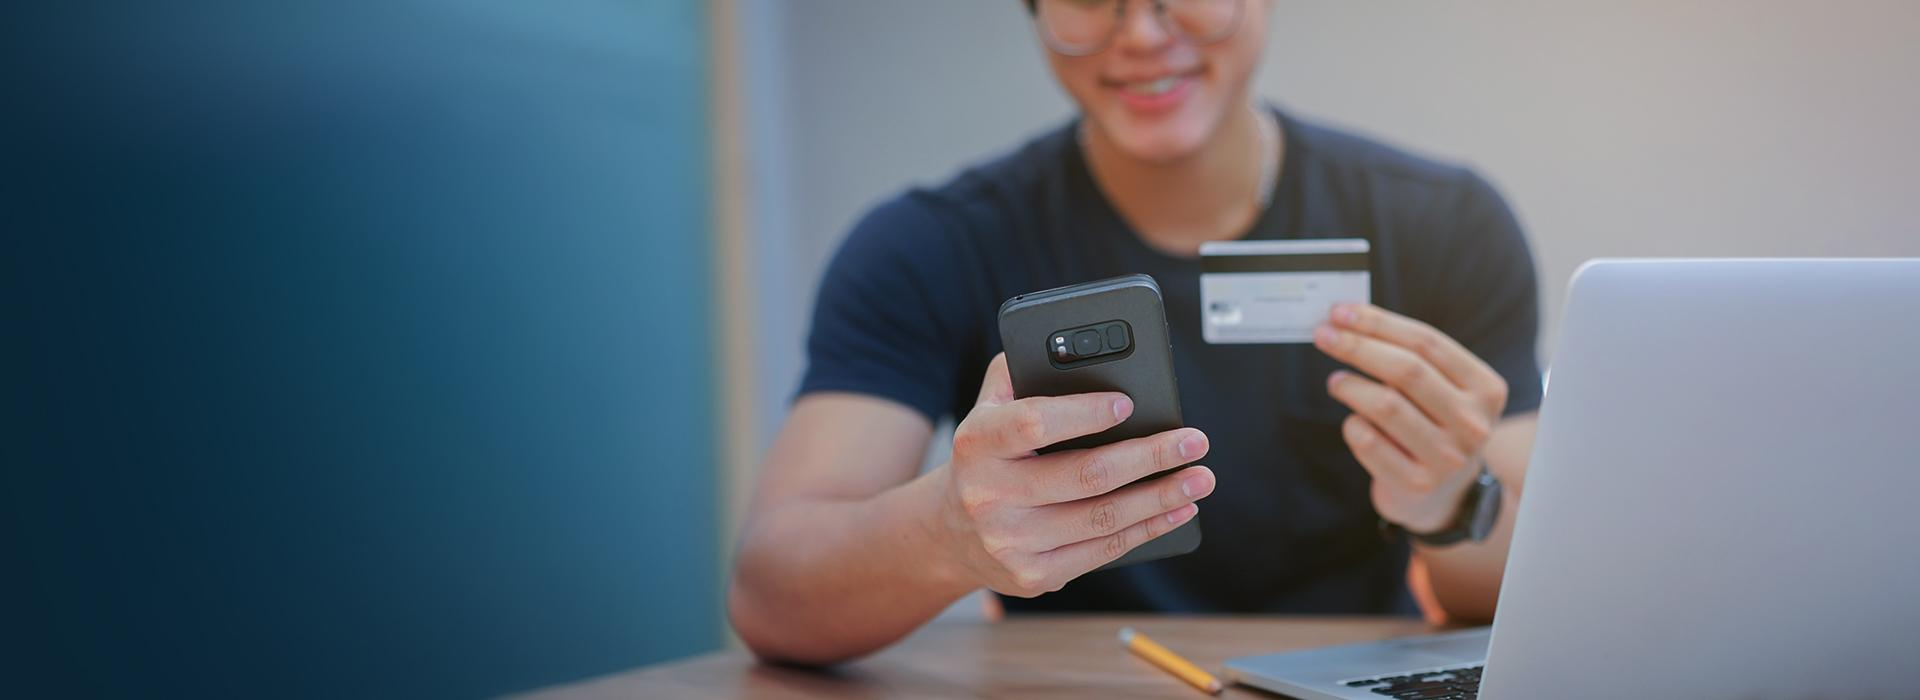 man holding credit card on pay day looking at phone